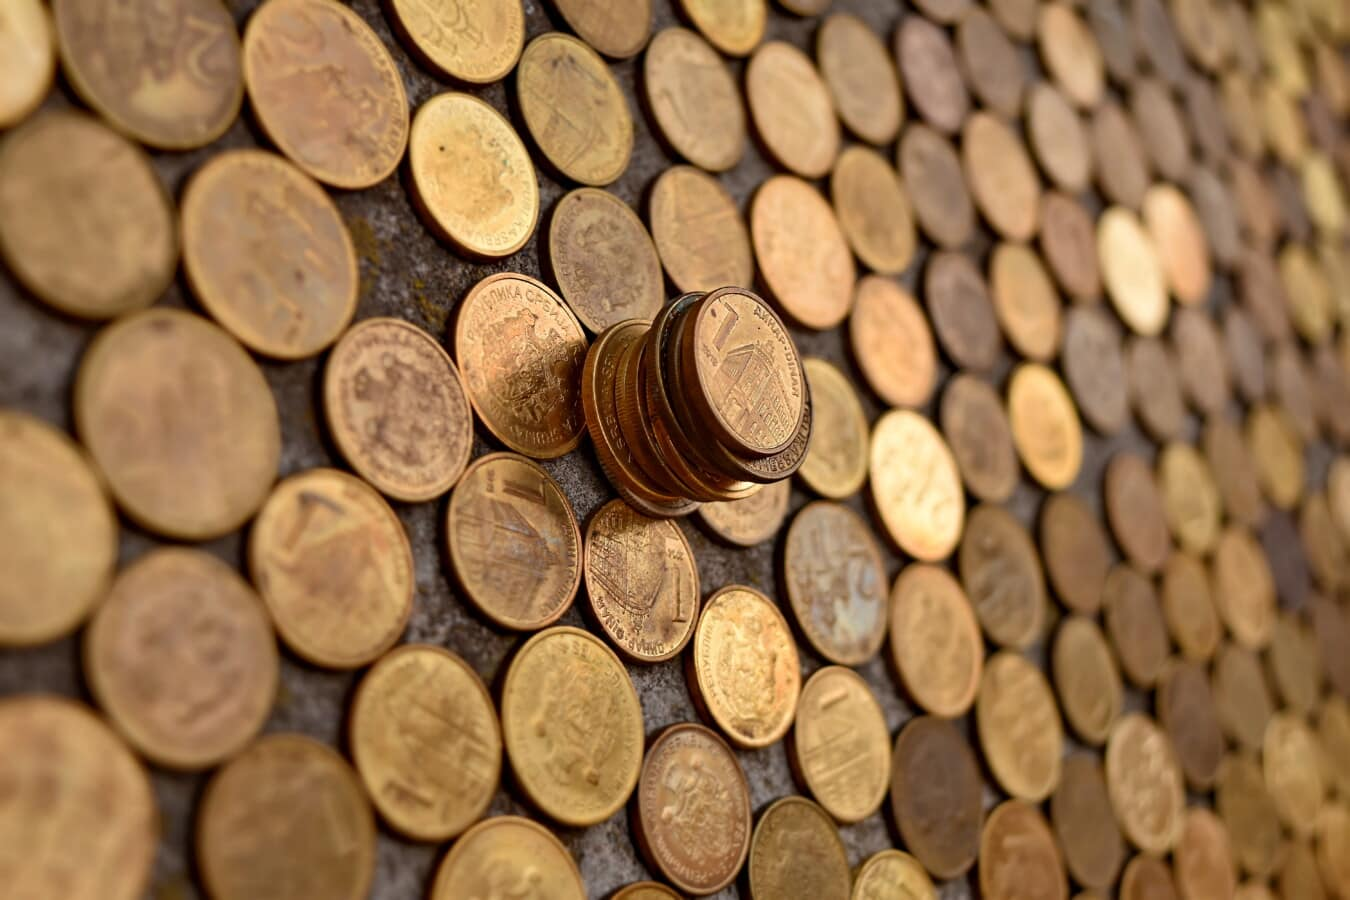 shining, metal, coins, fortune, cash, money, investment, rich, copper, brass